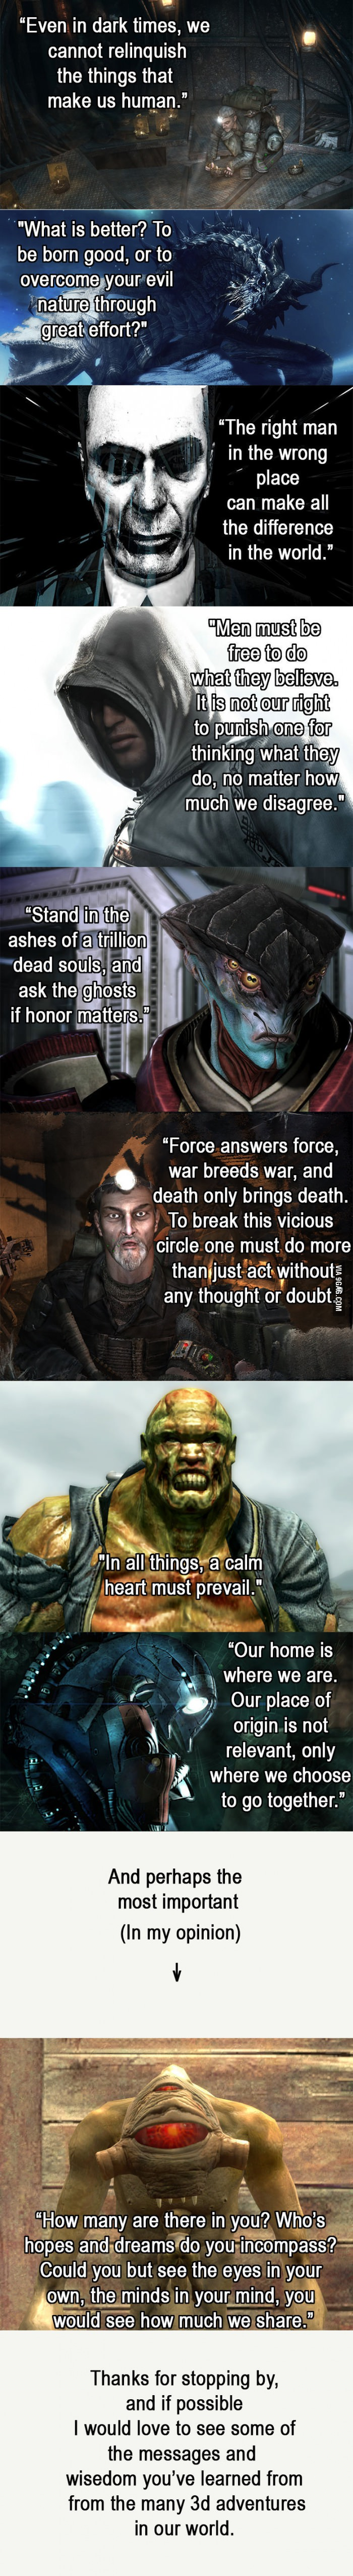 When Gaming Quotes Get Deep 9gag Video Game Quotes Games Game